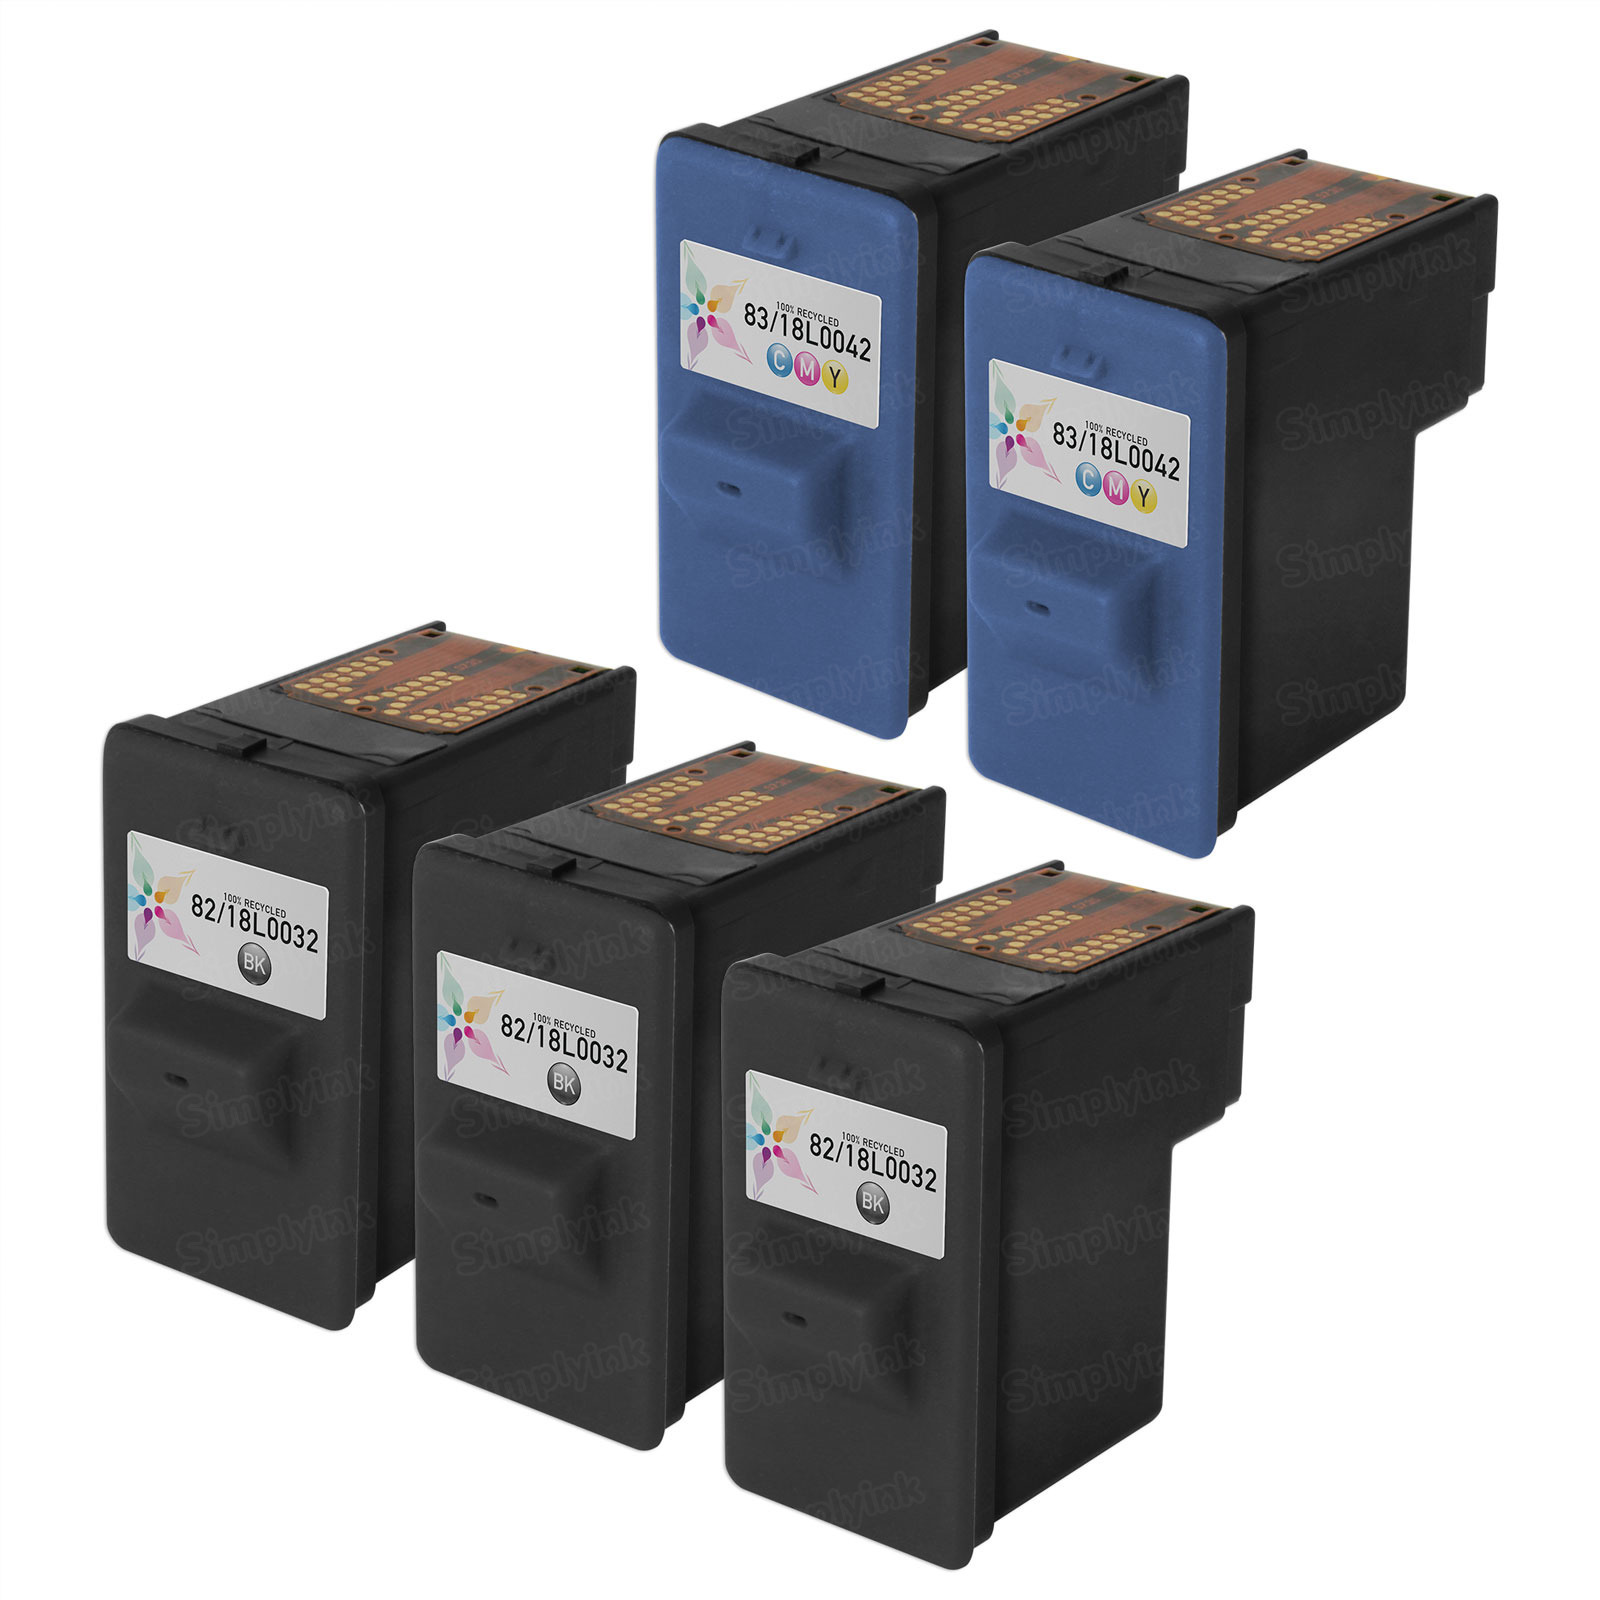 Inkjet Supplies for Lexmark Printers - Remanufactured Bulk Set of 5 Ink Cartridges 3 Black Lexmark 82 (18L0032) and 2 Color Lexmark 83 (18L0042)